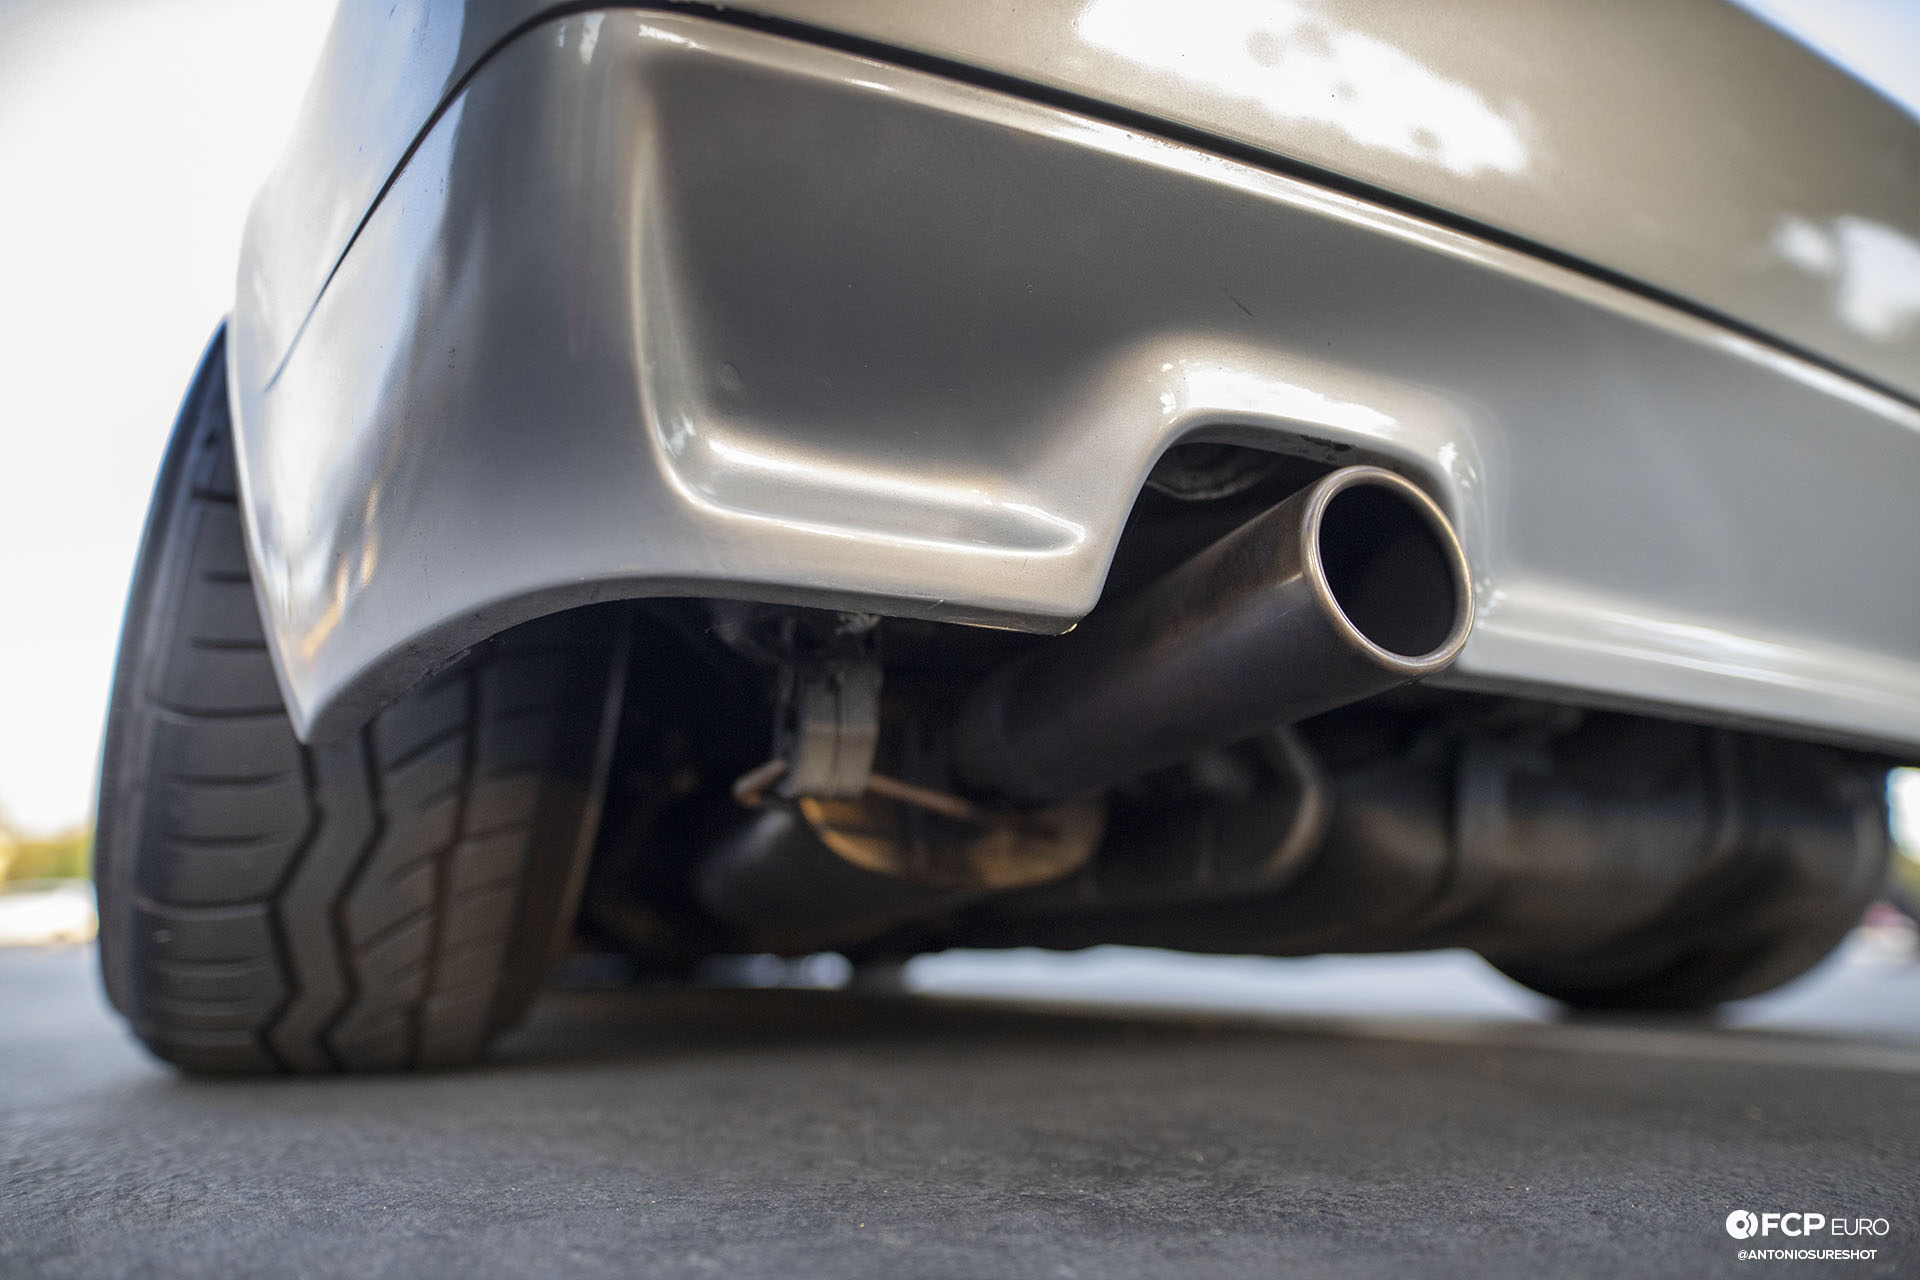 VW Corrado R32 Exhaust Tip